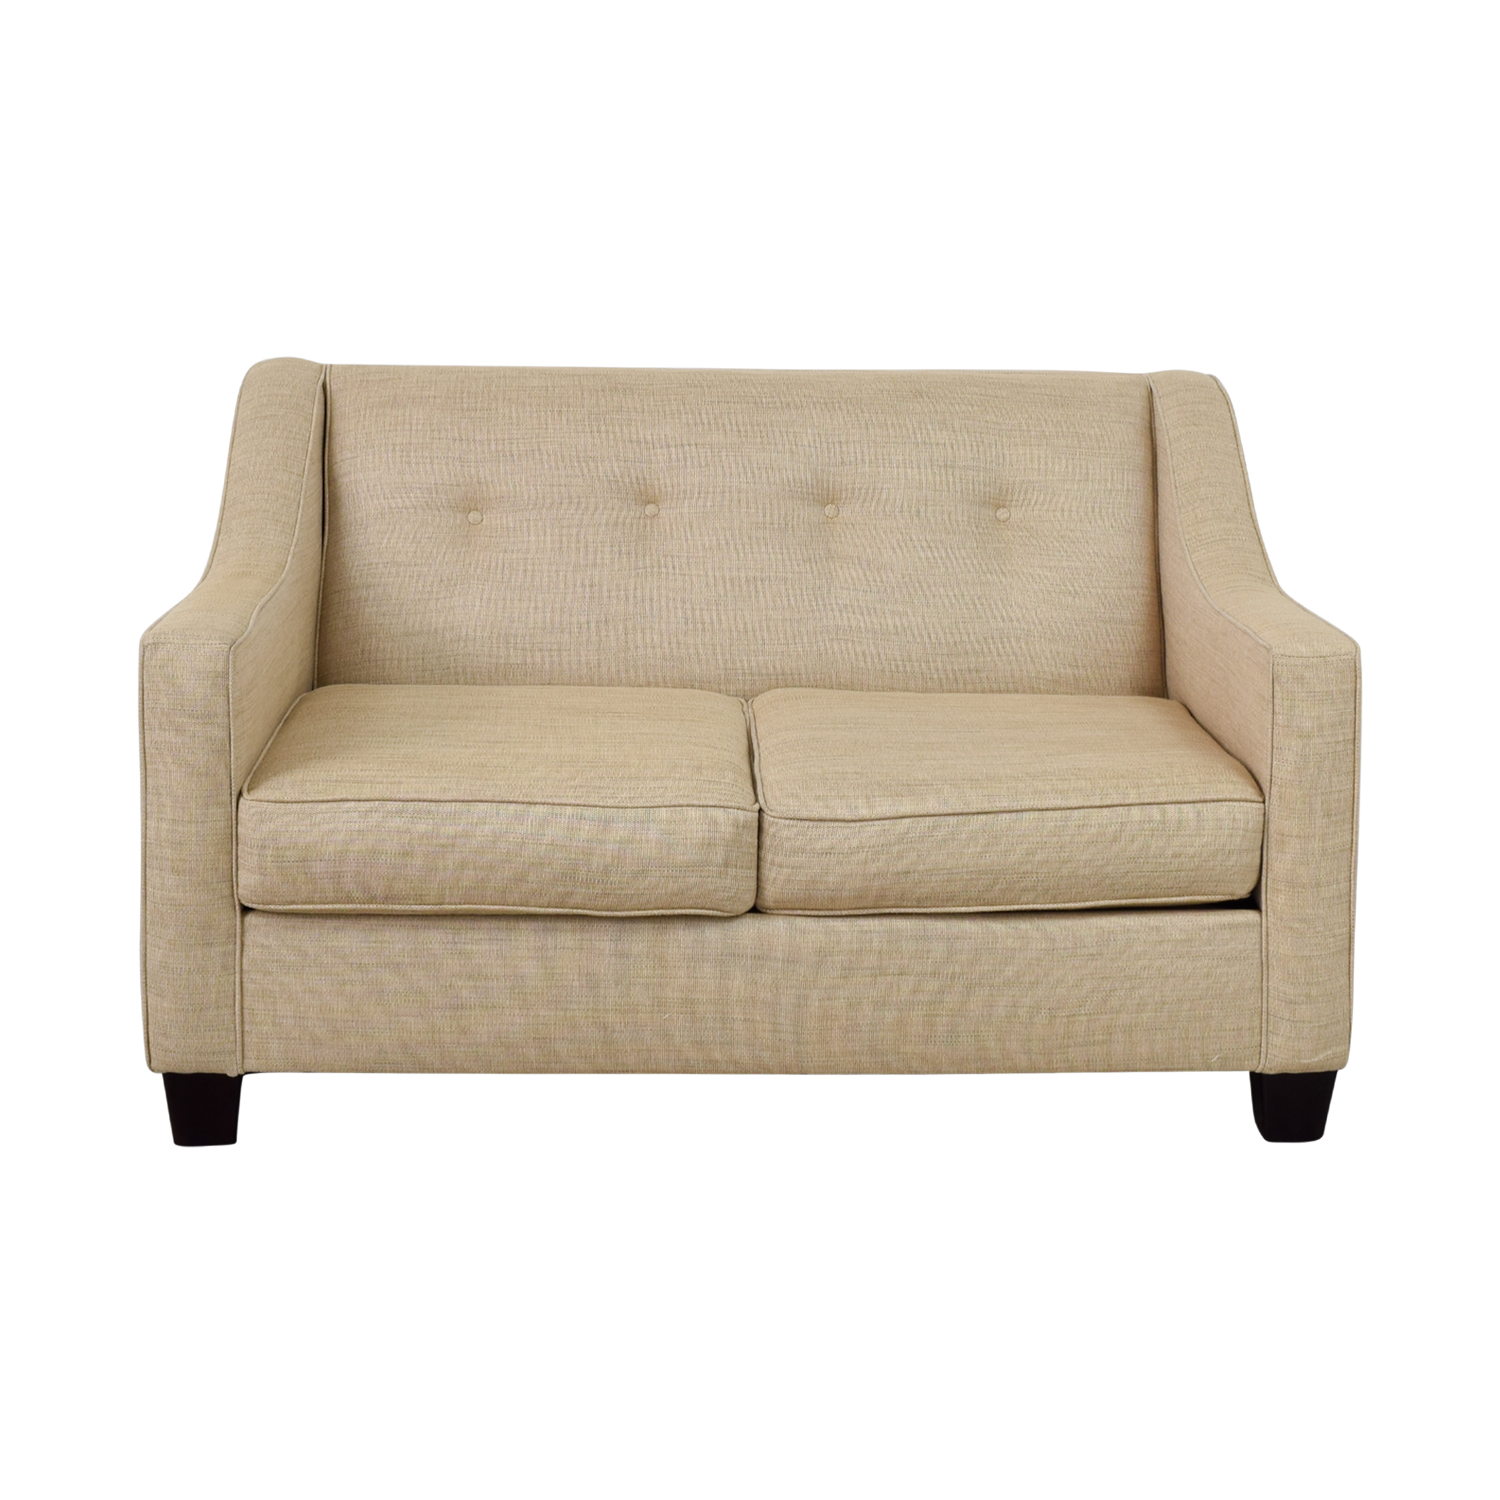 52 Off Bob S Furniture Bob S Furniture Caleb Tan Tufted Back Loveseat Sofas